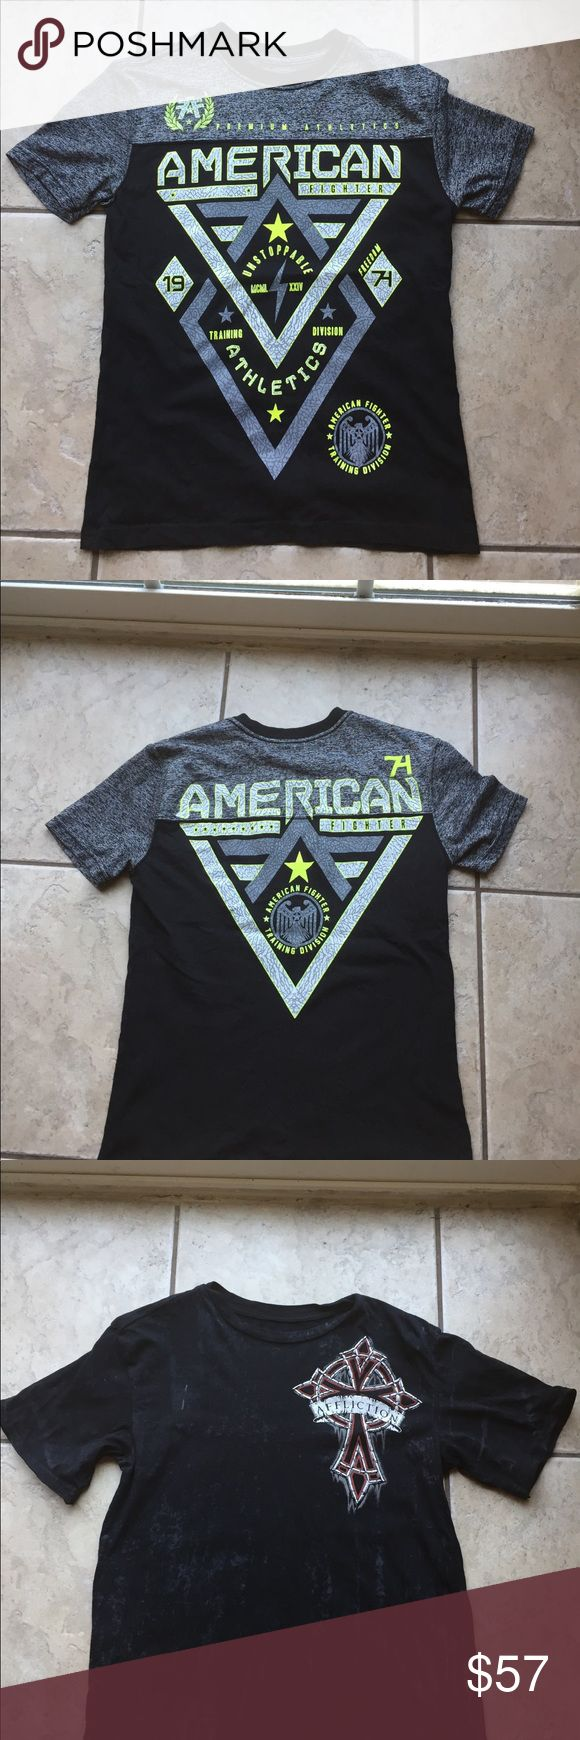 Boys Affliction and American Fighter tees Perfect for school!!! Listing is for all 3 shirts. Affliction shirt (Cain Velasquez) size Small (8) AFFLICTION SHIRT size Medium (10/12) AMERICAN FIGHTER SHIRT size Small (10/12)  Look through my closet for each separate listing and description.  *PRICE IS FIRM IN THIS BUNDLE AS SHIRTS ARE DISCOUNTED* Affliction Shirts & Tops Tees - Short Sleeve